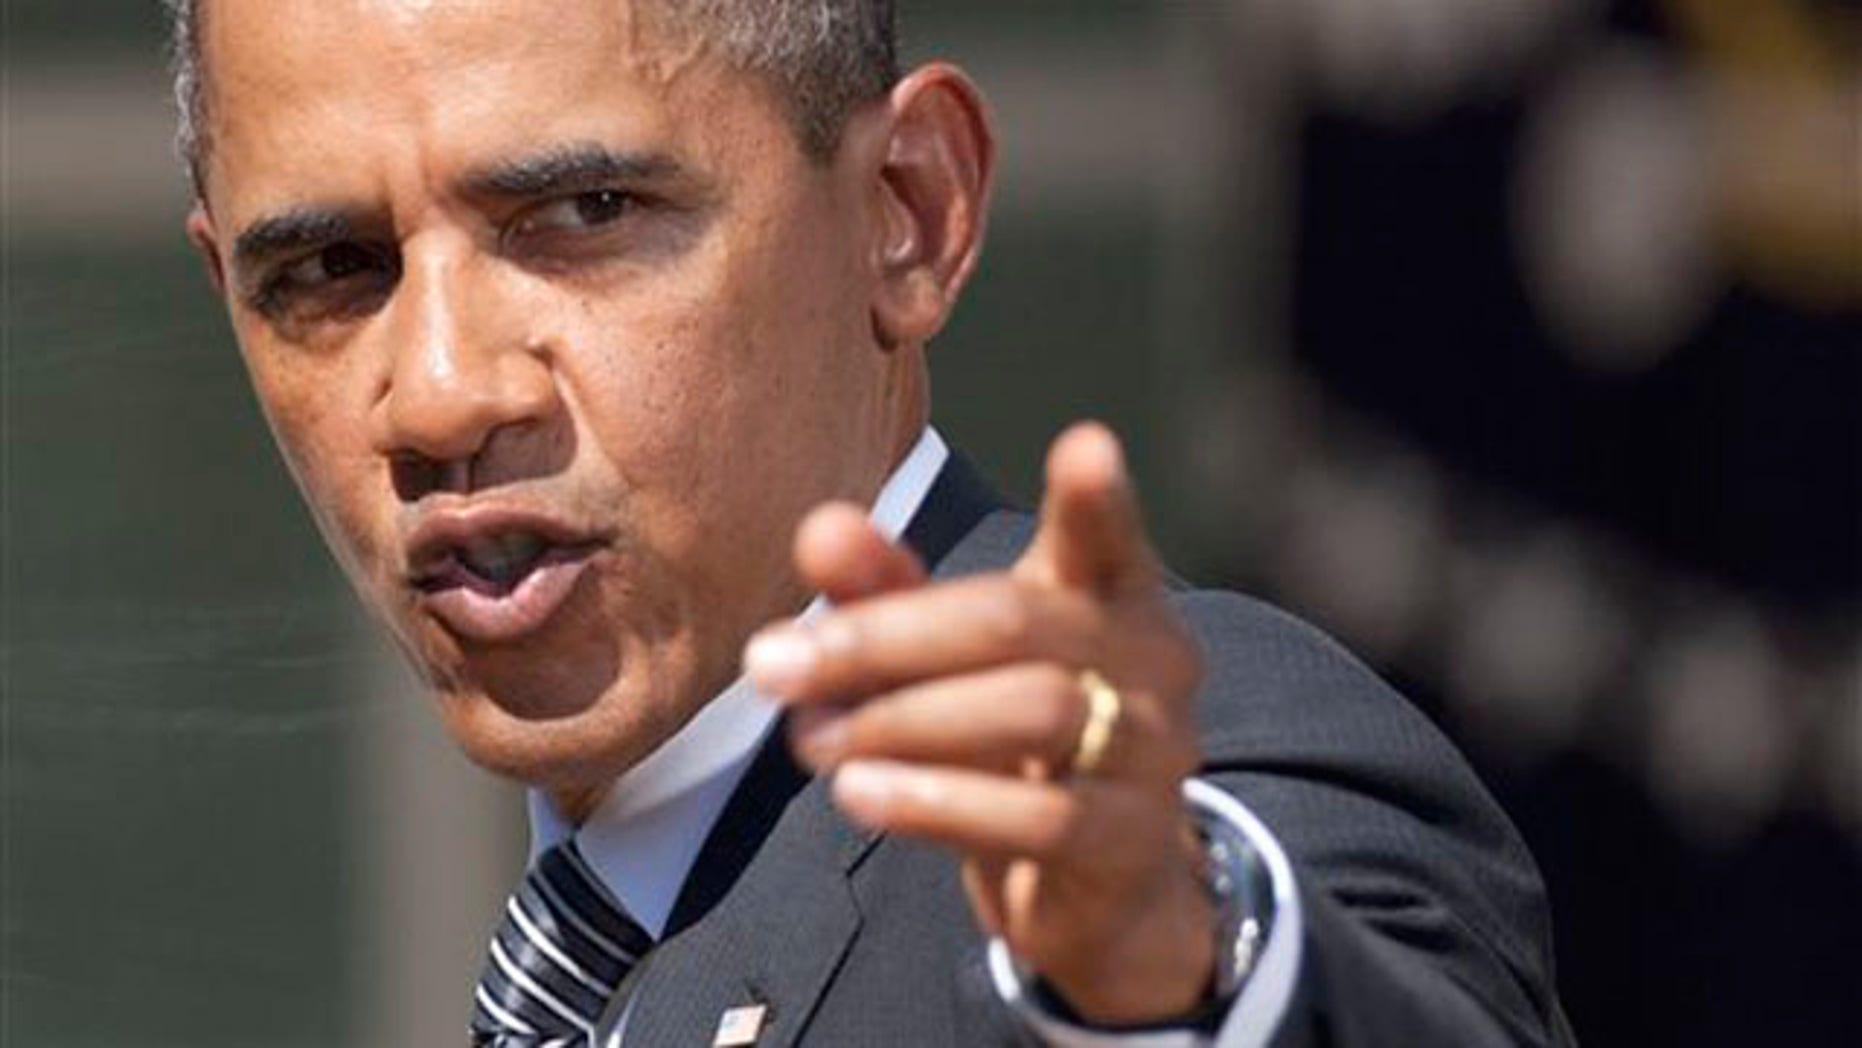 President Obama gestures after a statement in the Rose Garden of the White House in Washington Aug. 31.